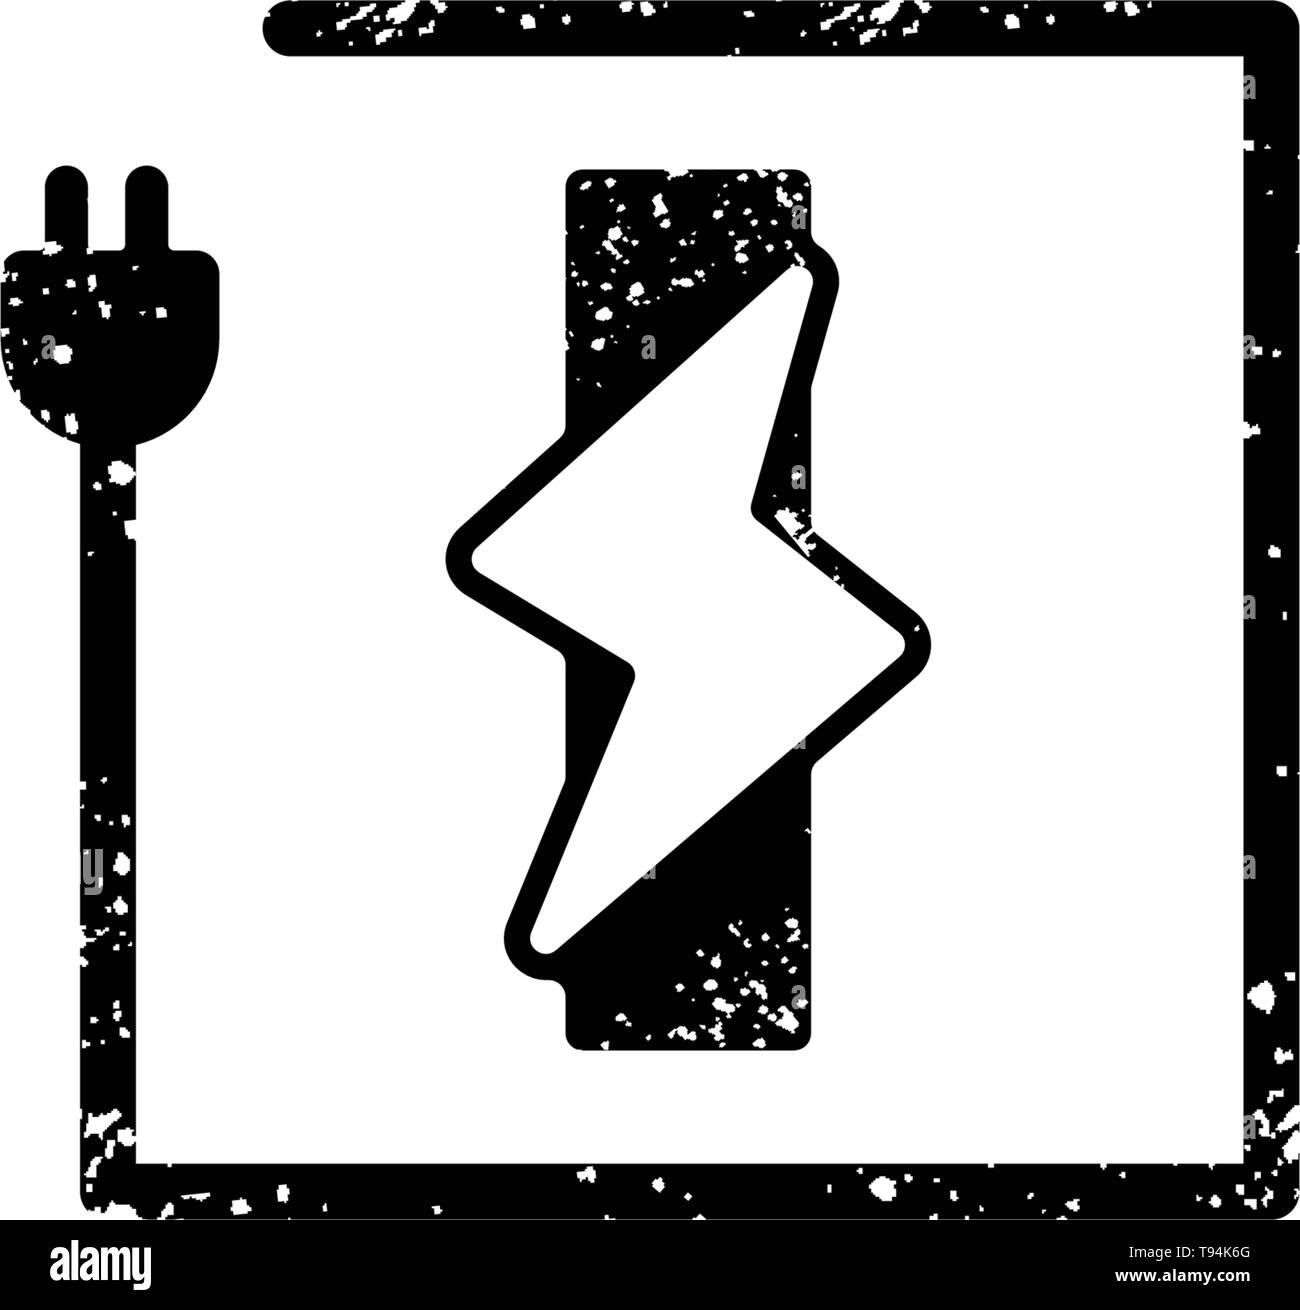 hight resolution of flash logo initial i symbol electrical vector icon element isolated vector stock image